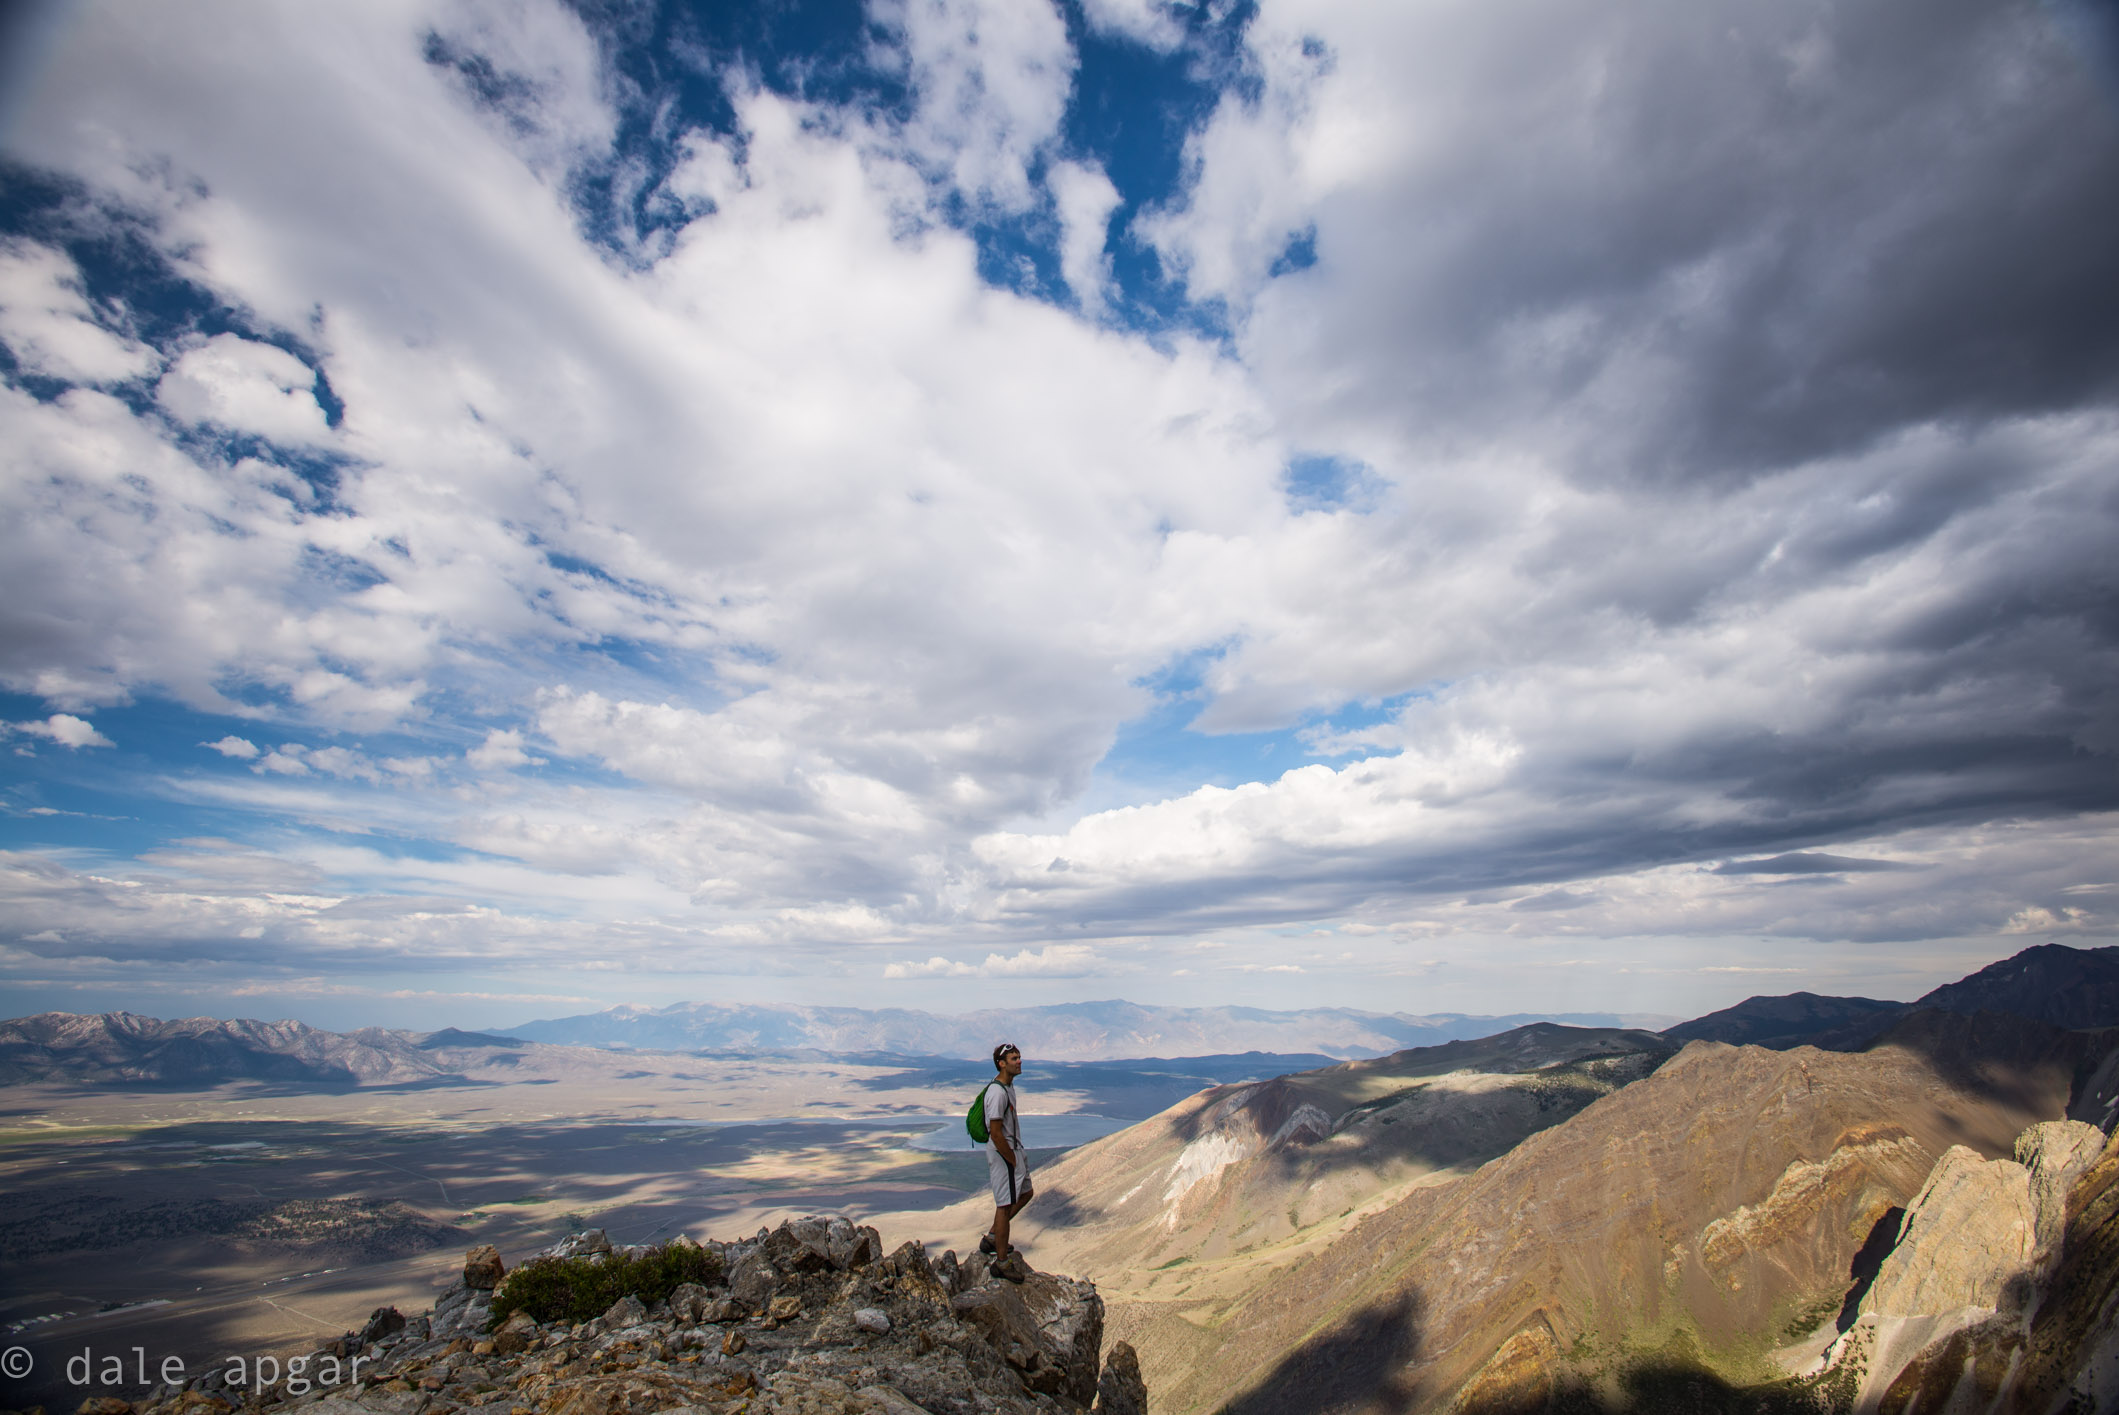 Robb enjoys the rare cloud cover keeping the sky company while descending Laurel Mountain